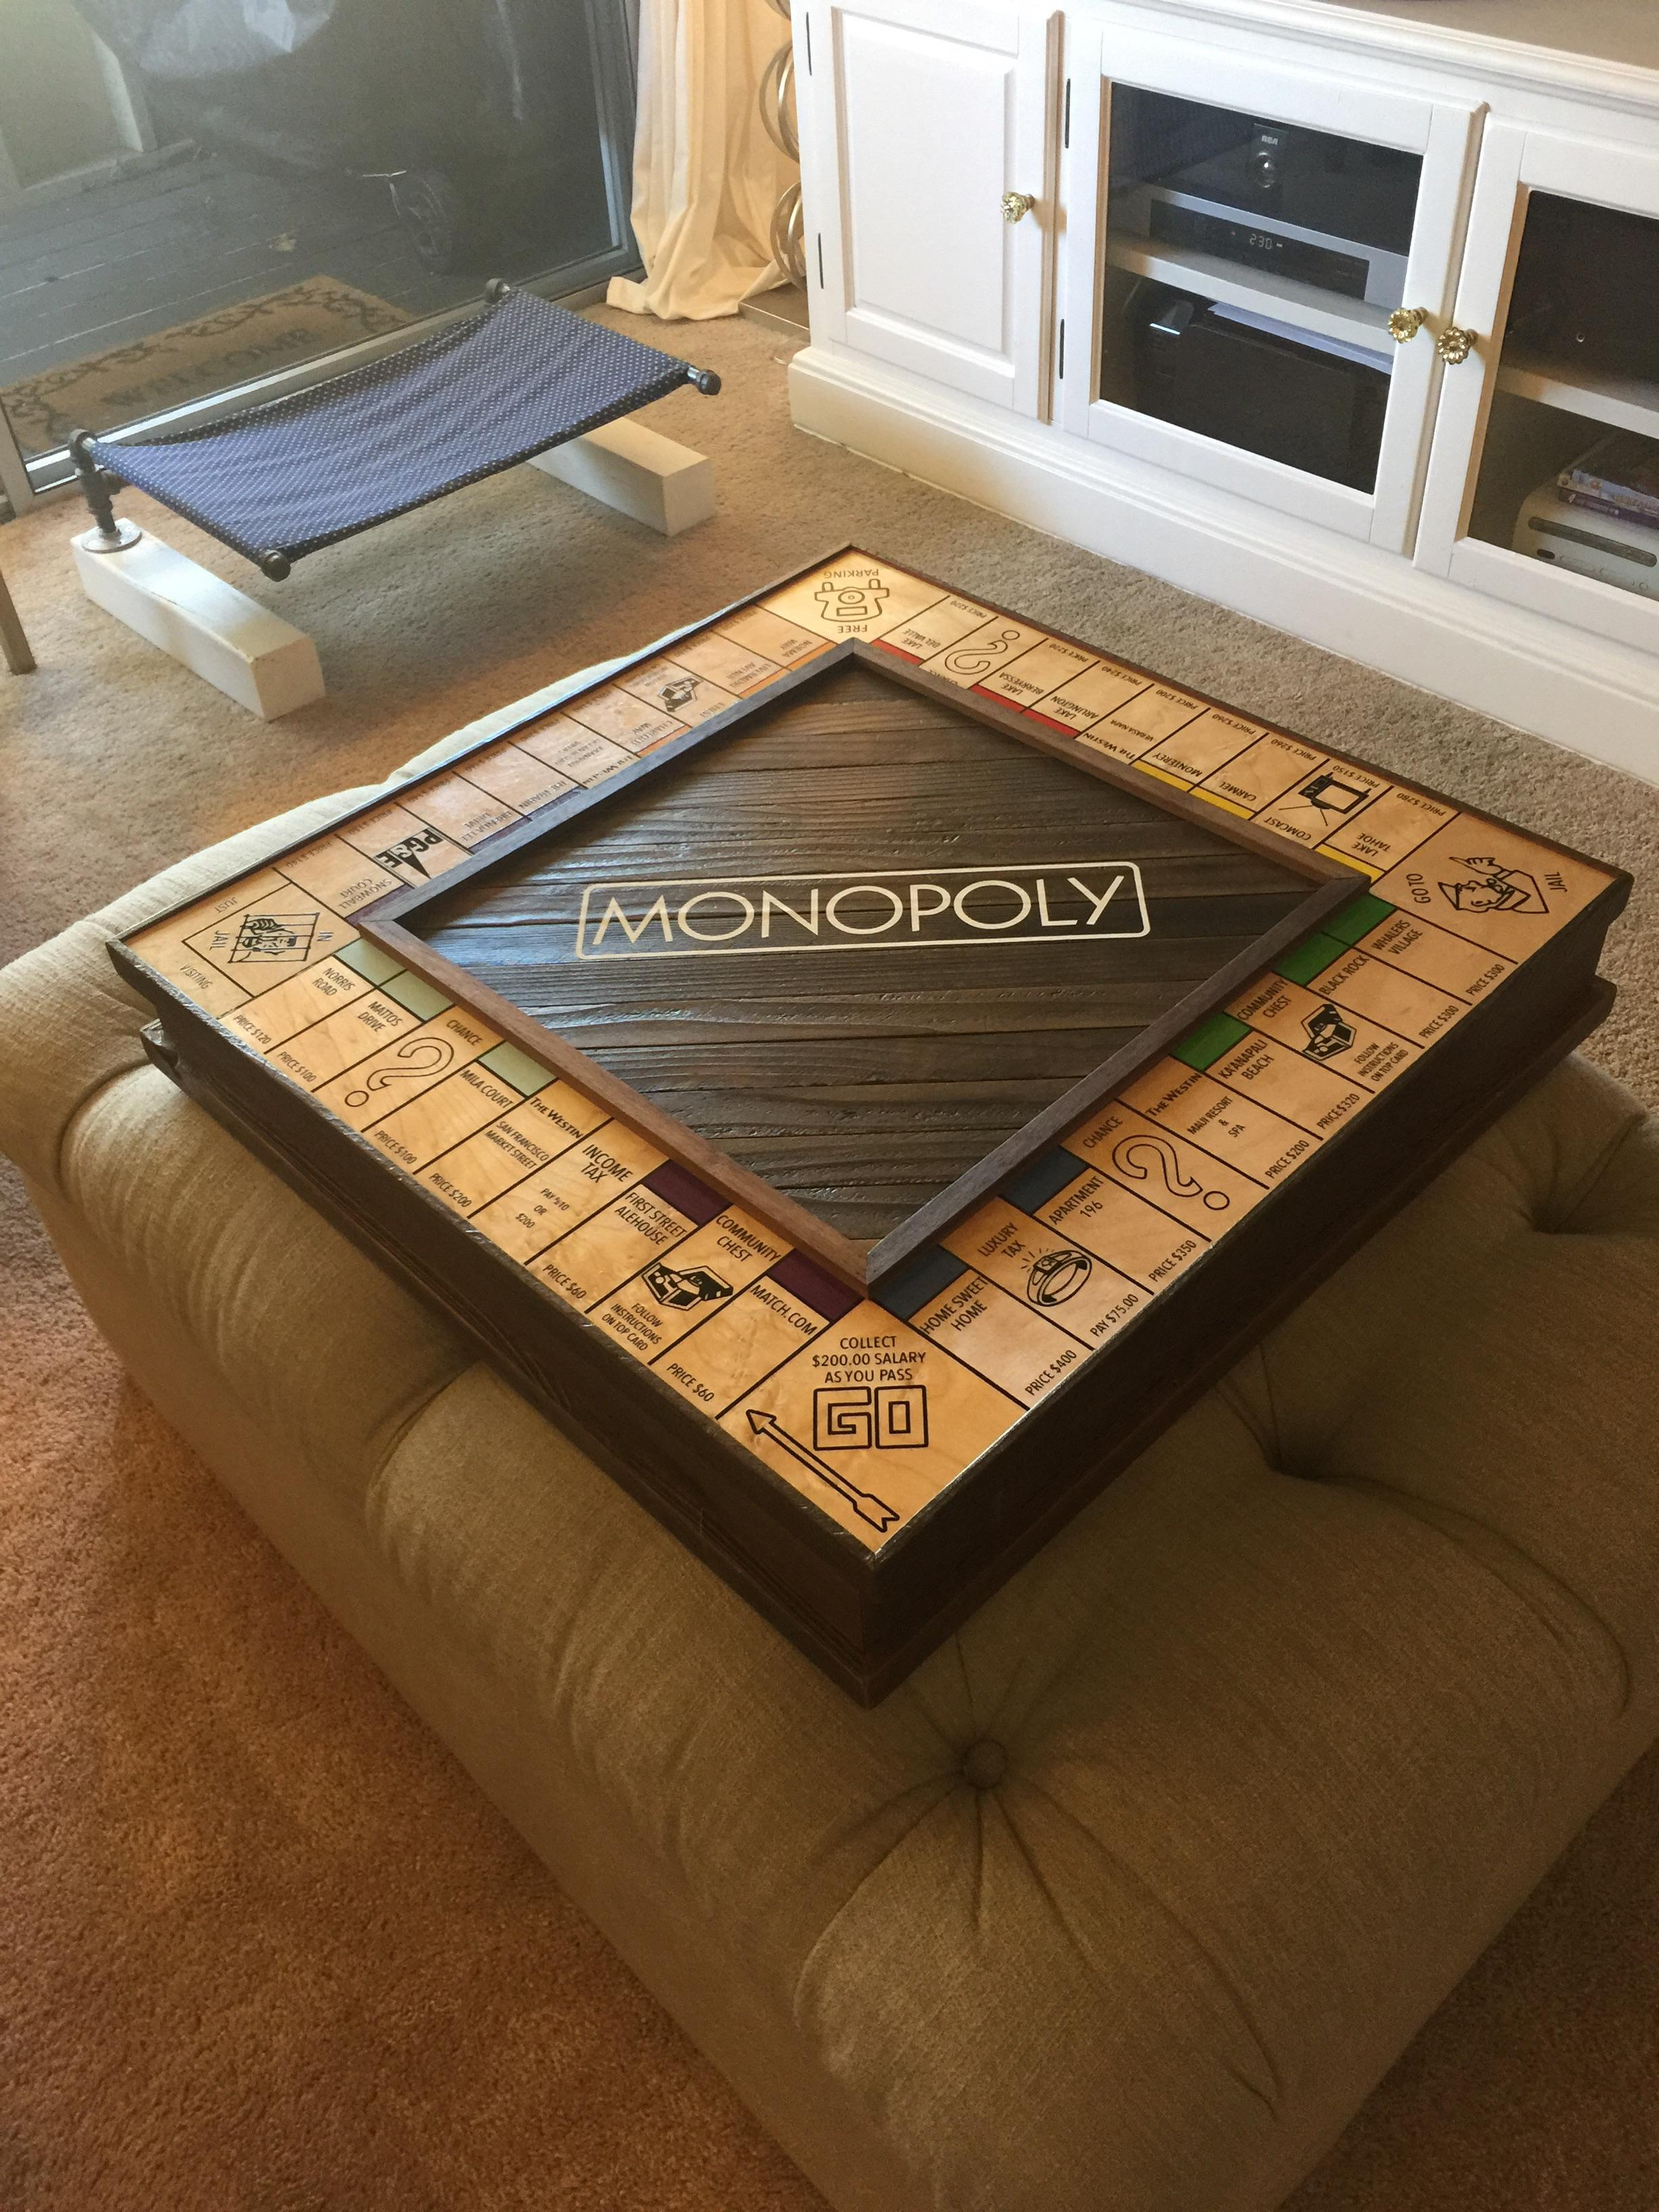 homemade monopoly board